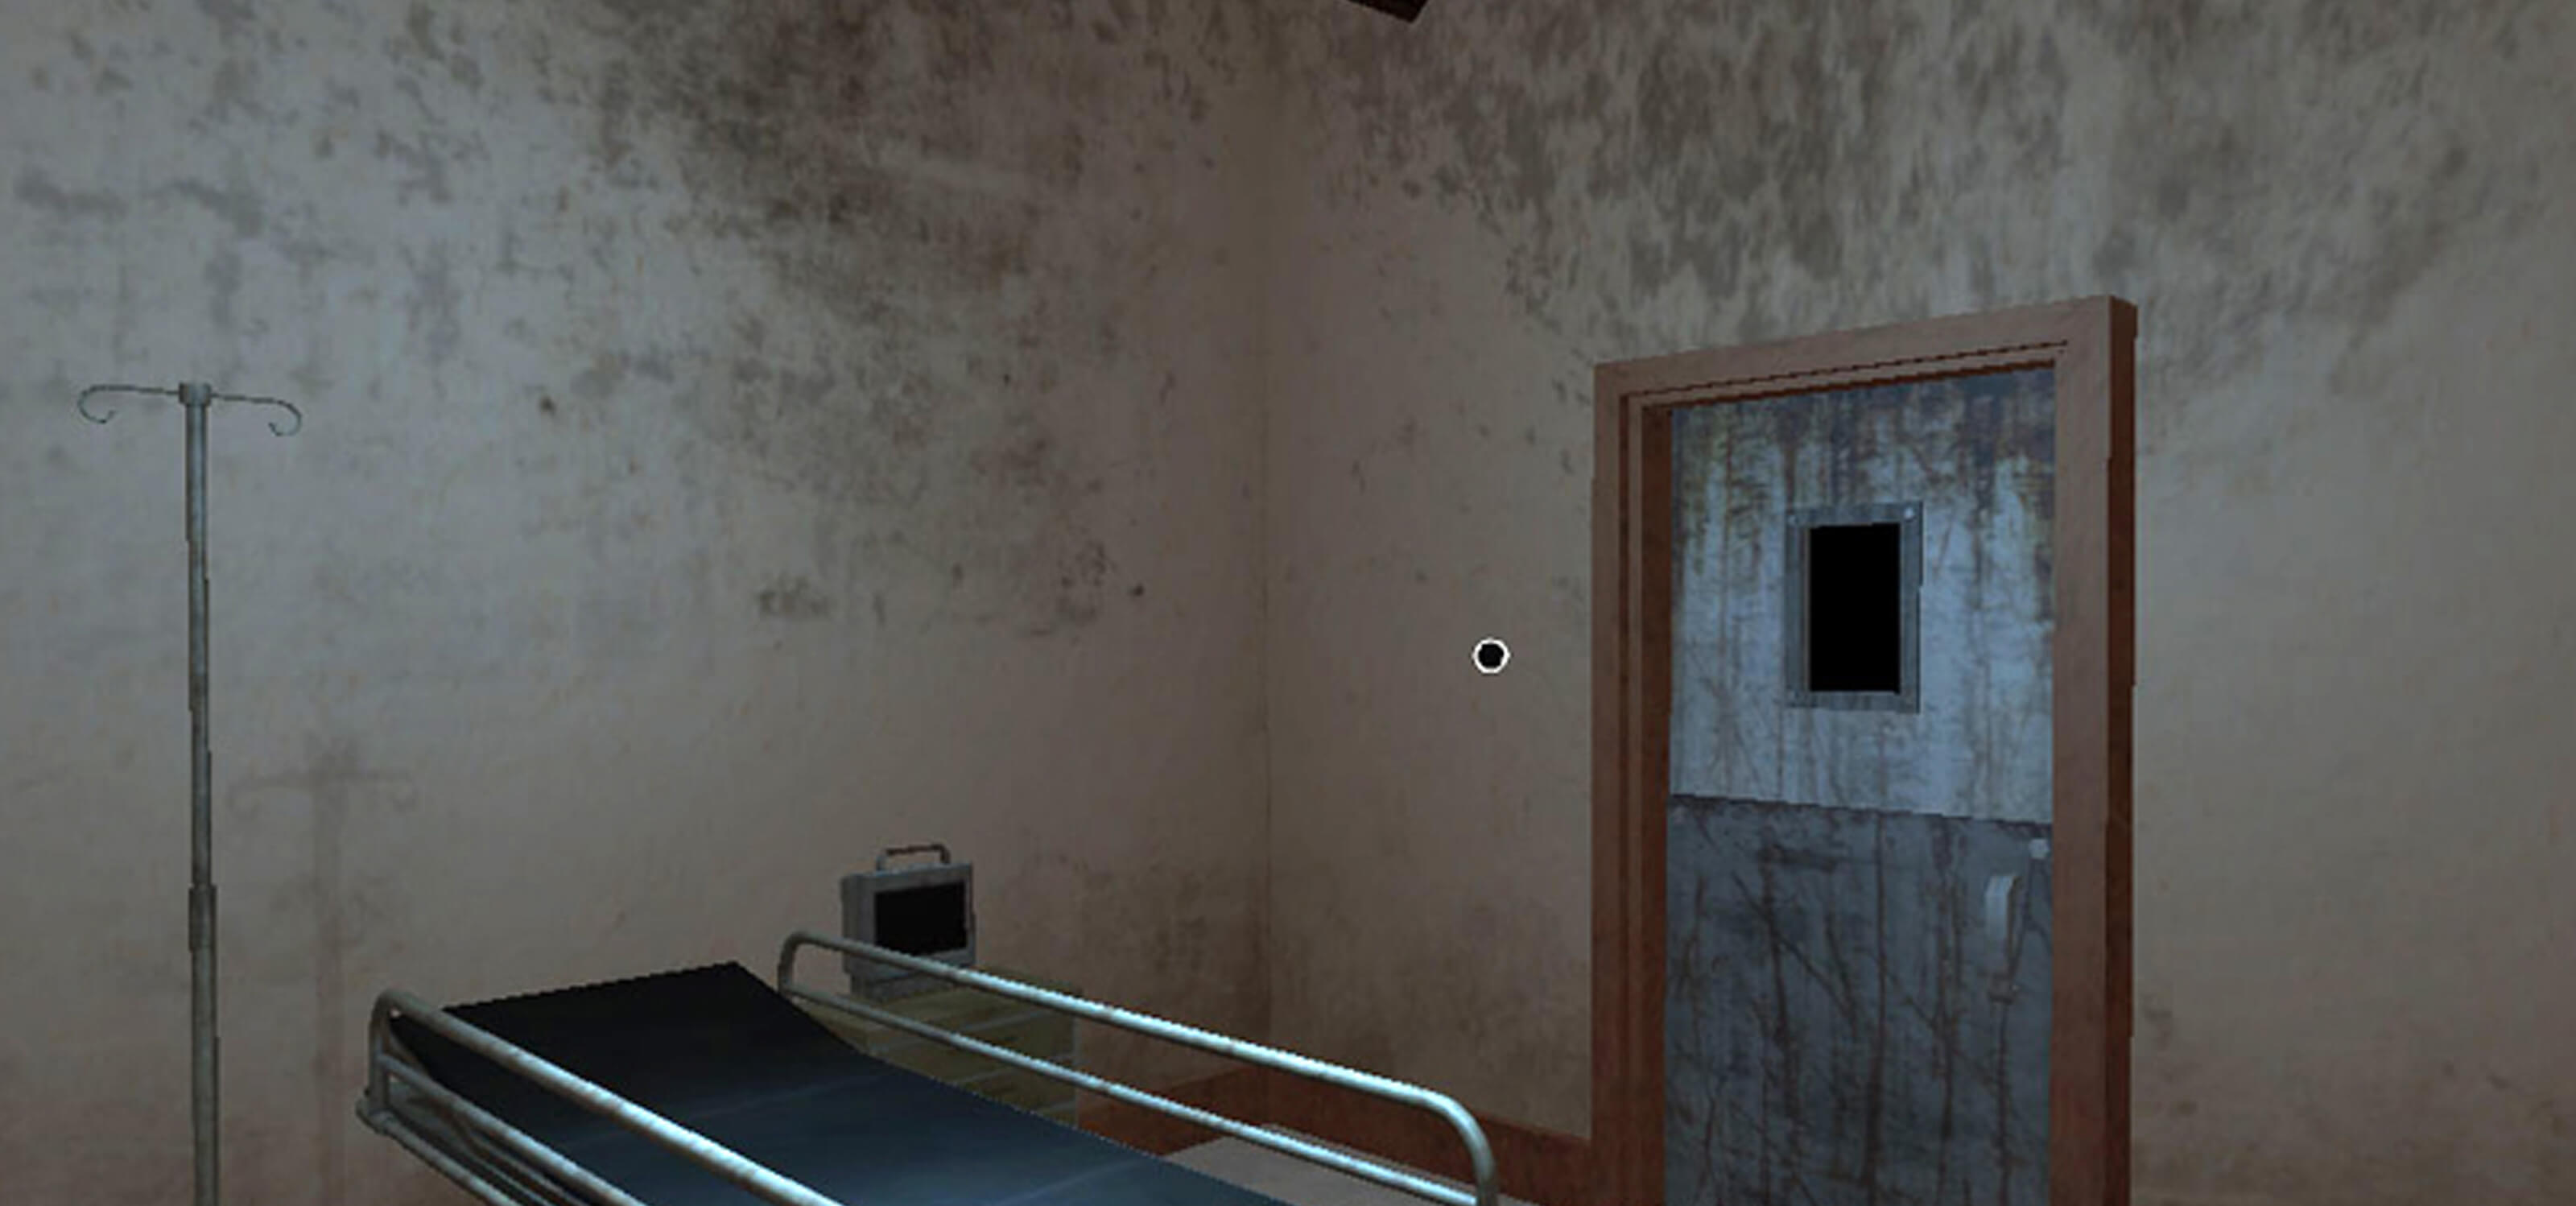 Screenshot of game inside a grimy hospital room with a gurney and door